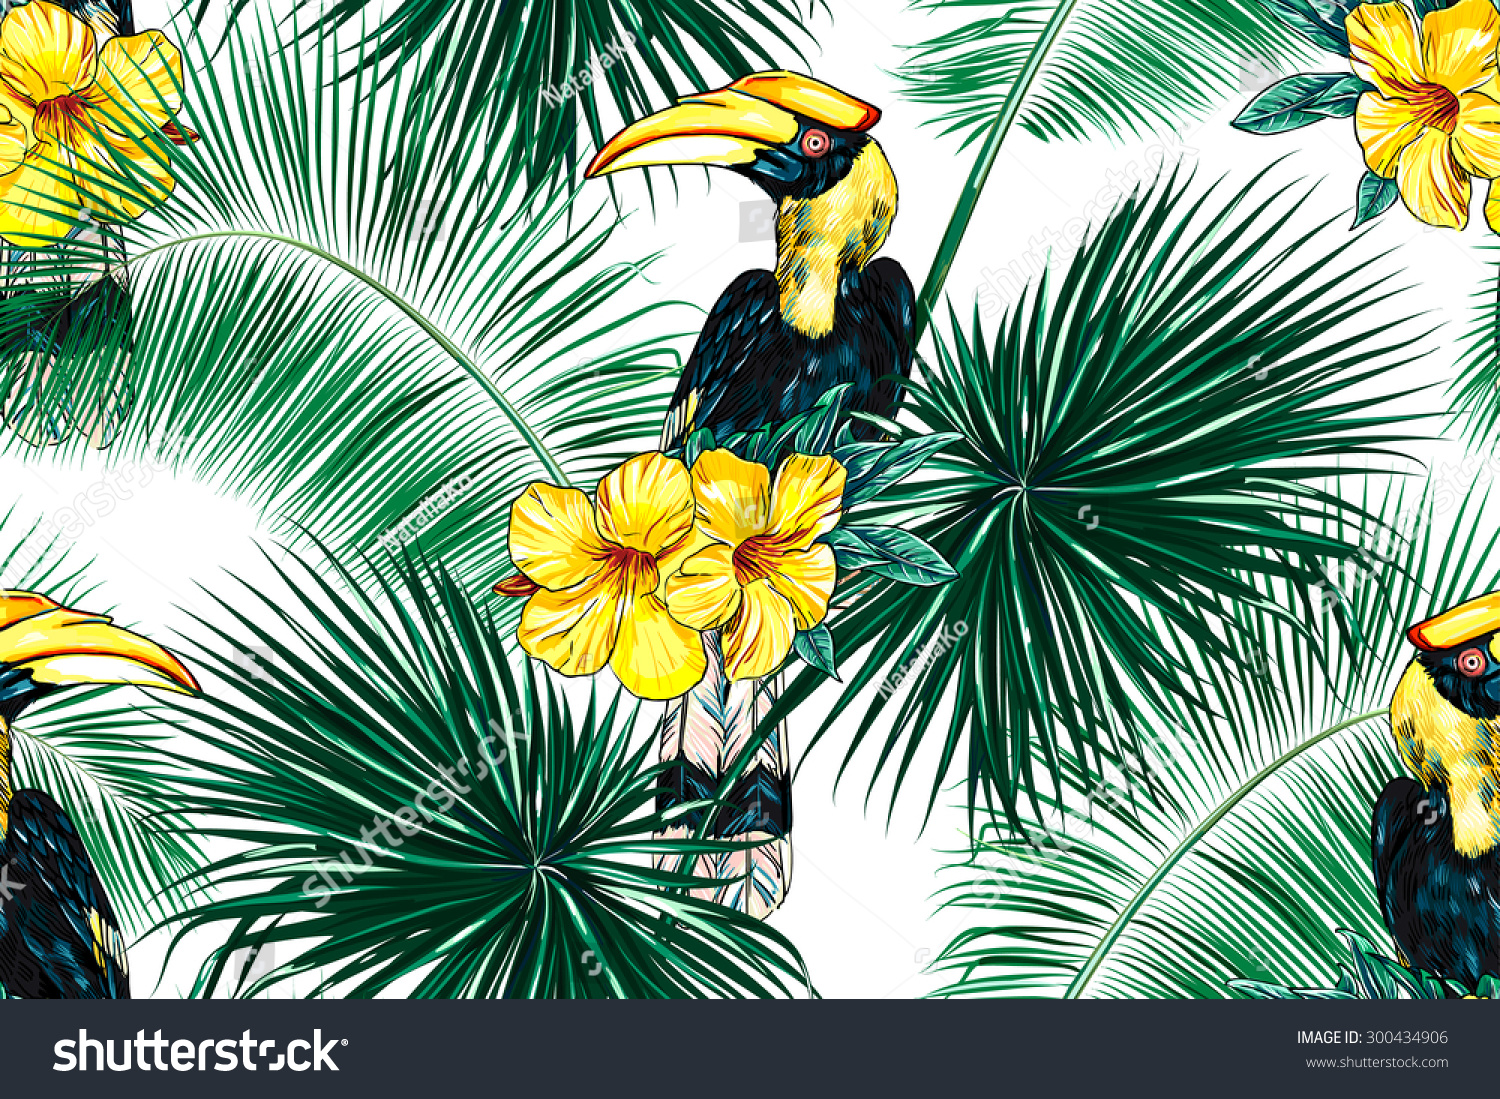 wallpaper tropical birds and foliage - photo #20